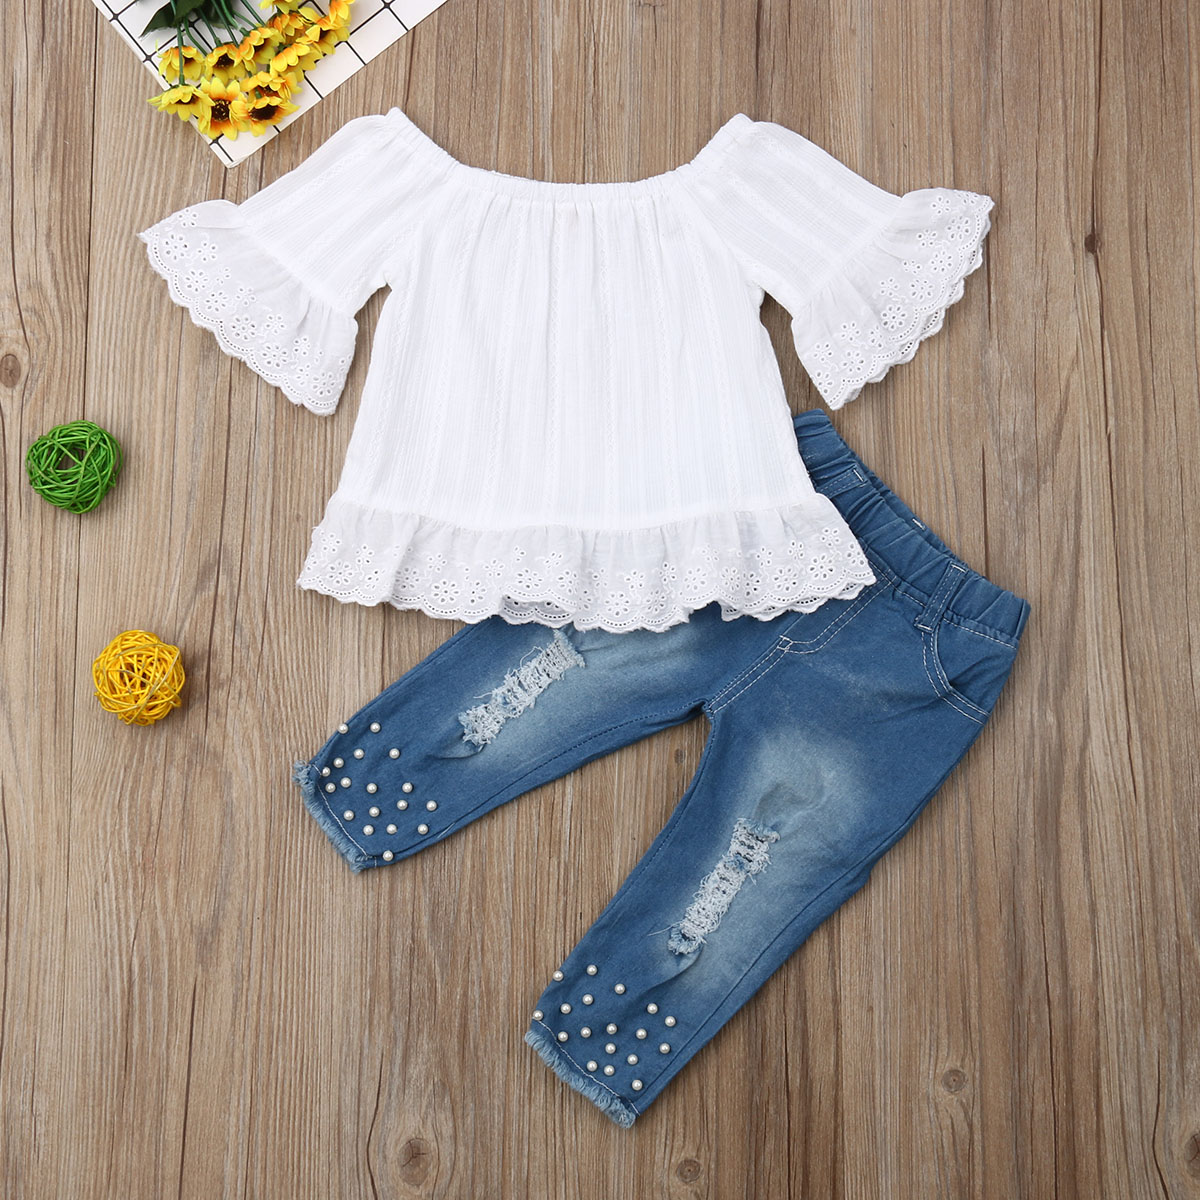 Pudcoco Summer Toddler Baby Girl Clothes Solid Color Off Shoulder Ruffle Tops Denim Pants 2Pcs Outfits Summer Casual Clothes